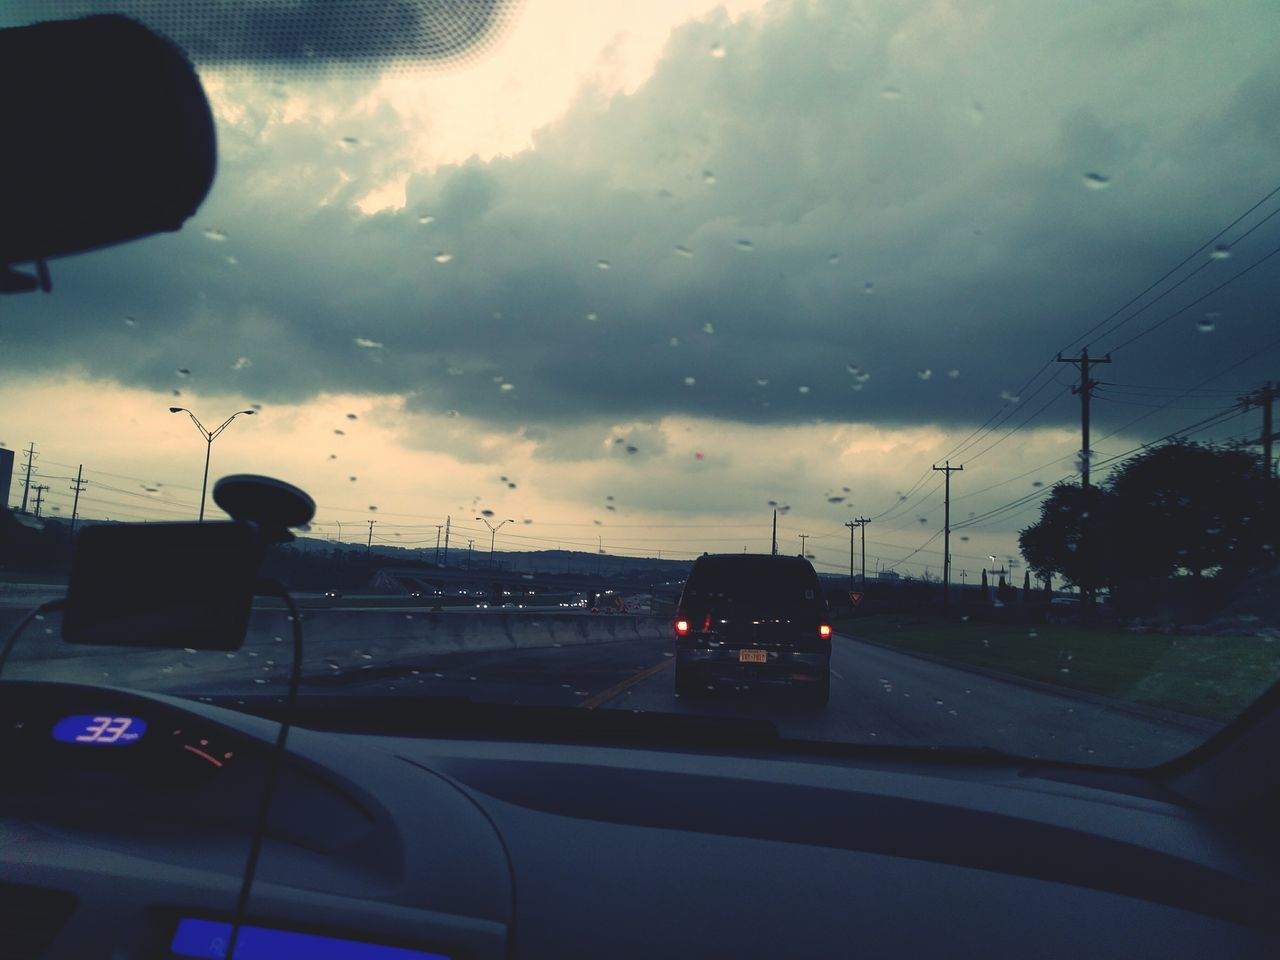 car, glass - material, transparent, transportation, land vehicle, car interior, windshield, vehicle interior, mode of transport, cloud - sky, road, sky, car point of view, sunset, drop, window, no people, side-view mirror, wet, road trip, nature, storm cloud, road sign, day, outdoors